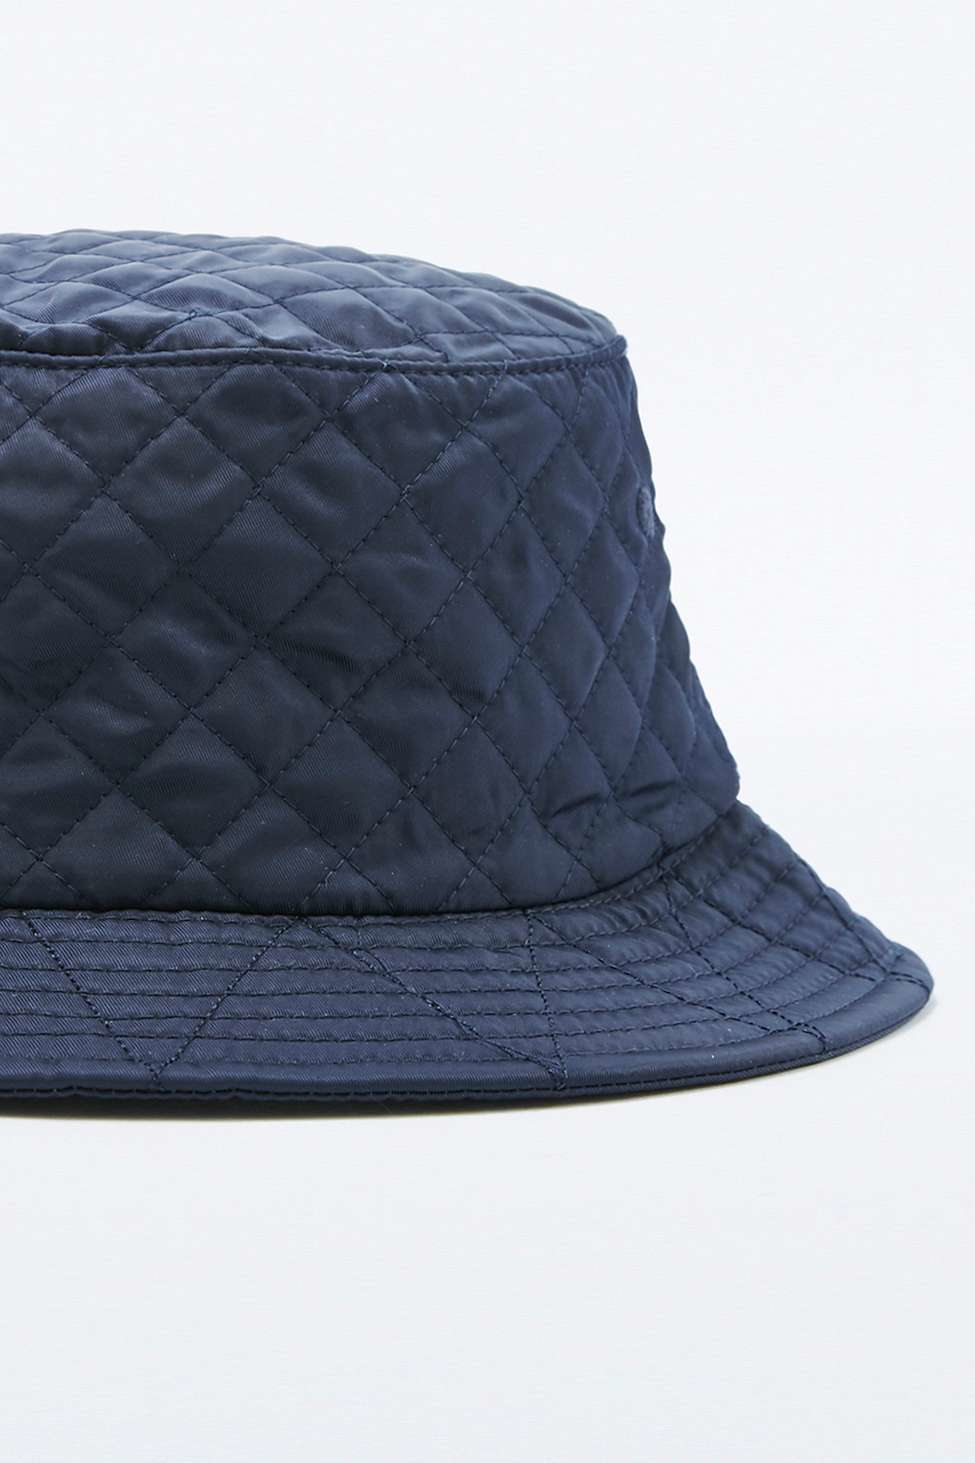 6035cf9d163 Herschel Supply Co. Quilted Lake Navy Bucket Hat in Blue for Men - Lyst